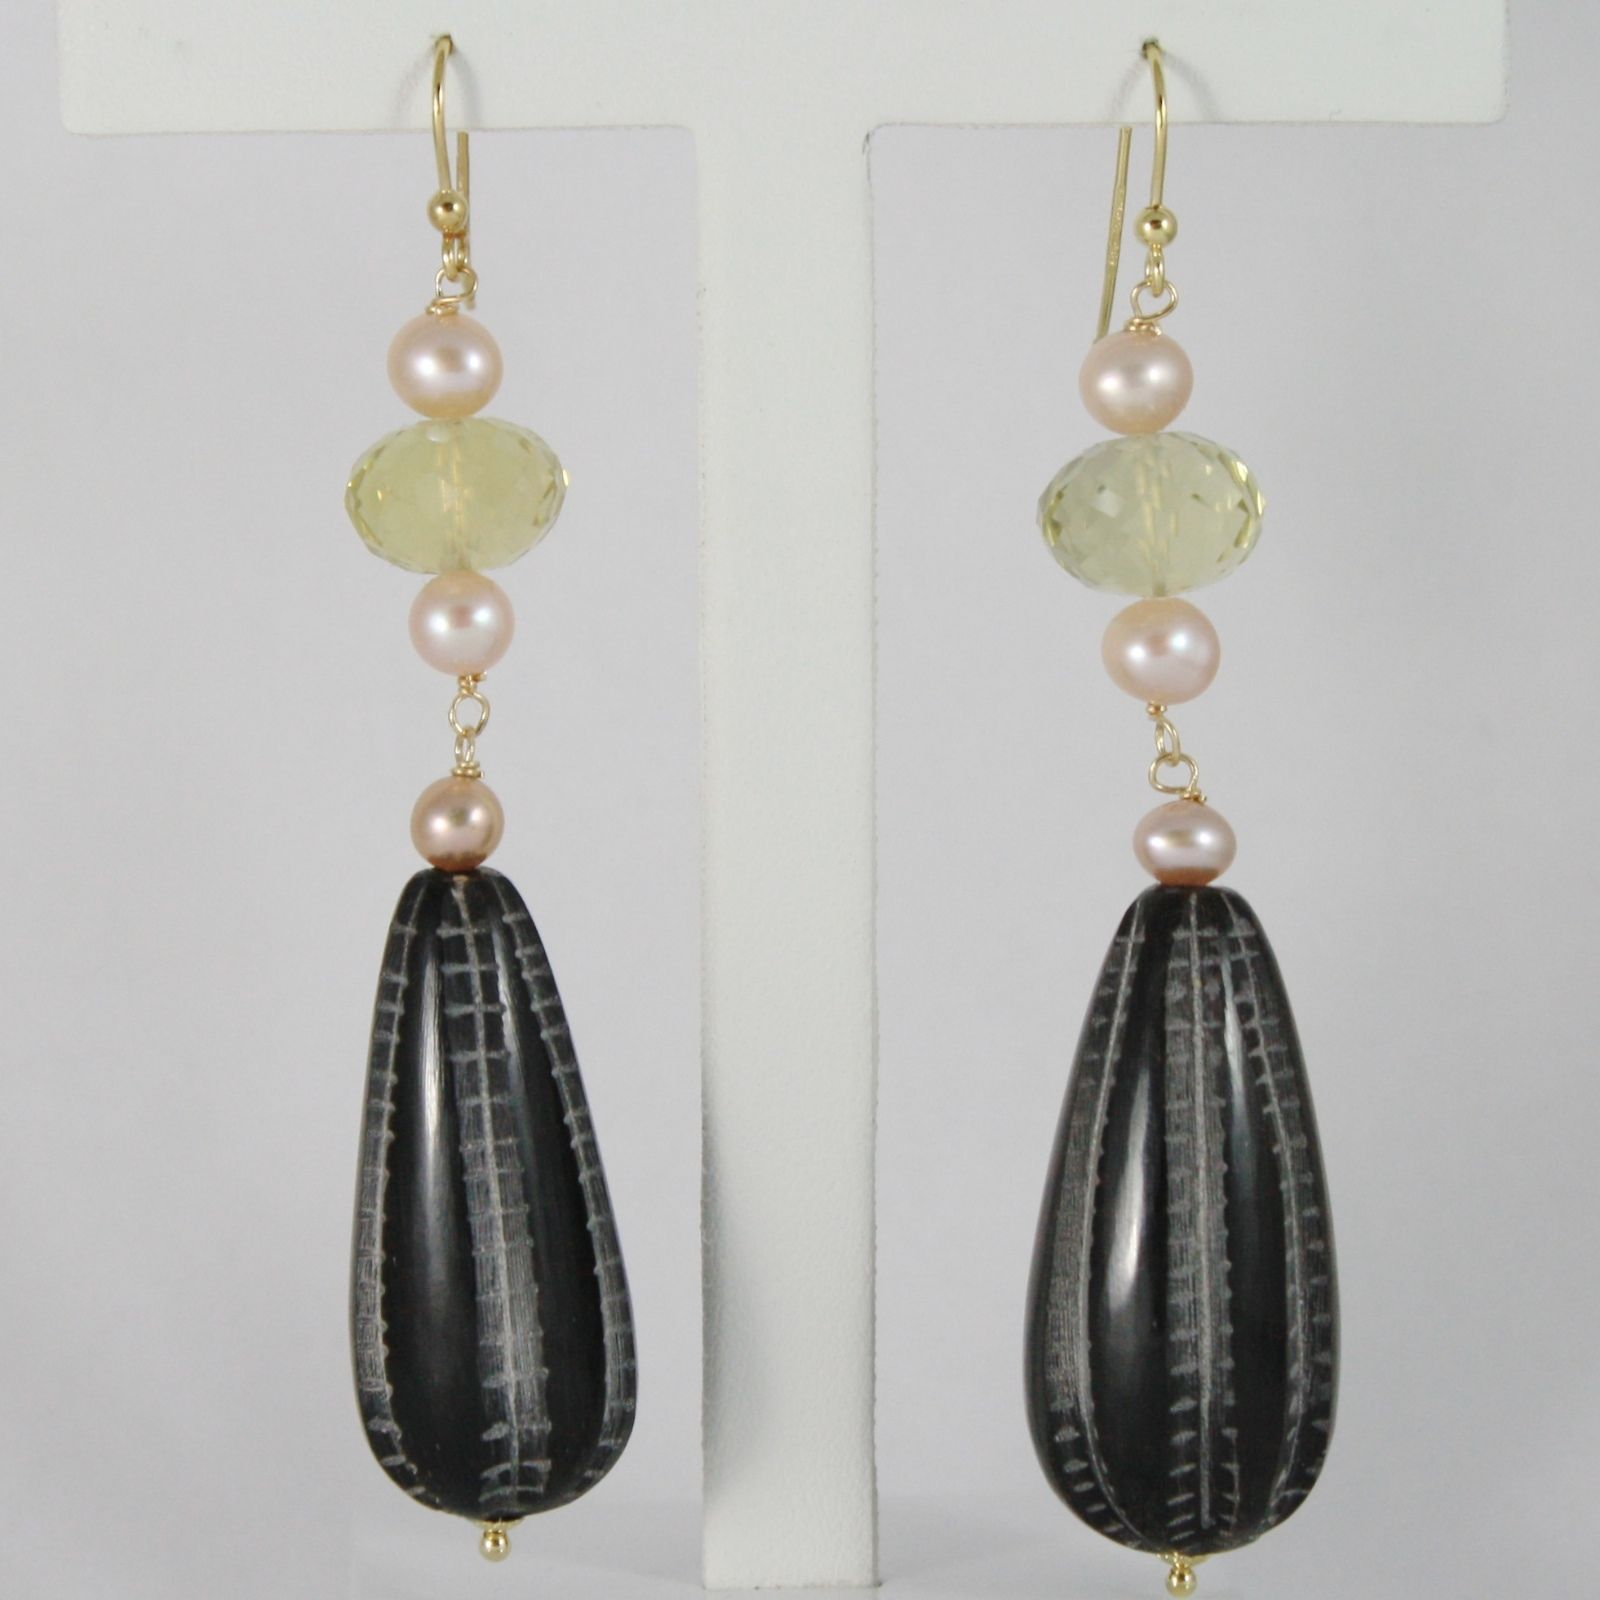 18K YELLOW GOLD PENDANT EARRINGS BIG WORKED DROP HORN, PEARLS AND LEMON QUARTZ